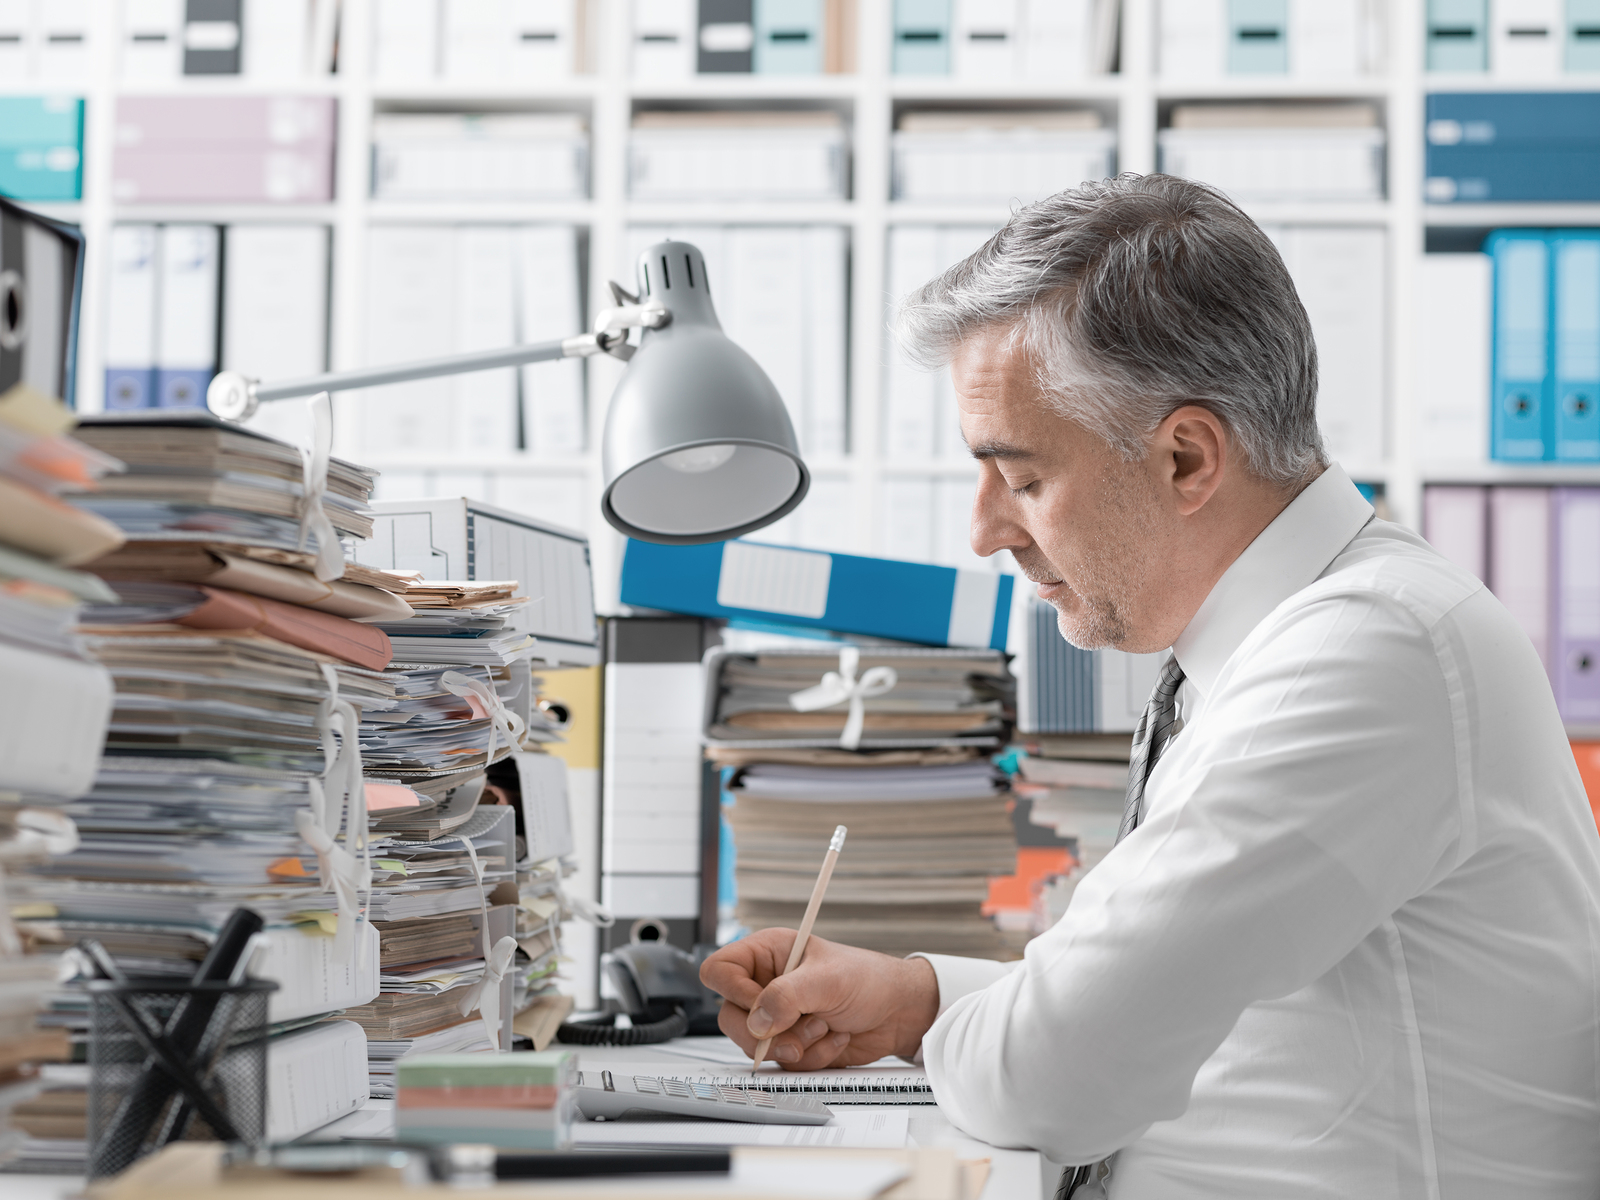 Desperate businessman working in the office late at night and overloaded with work, his desktop is covered with paperwork: business management and deadlines concept